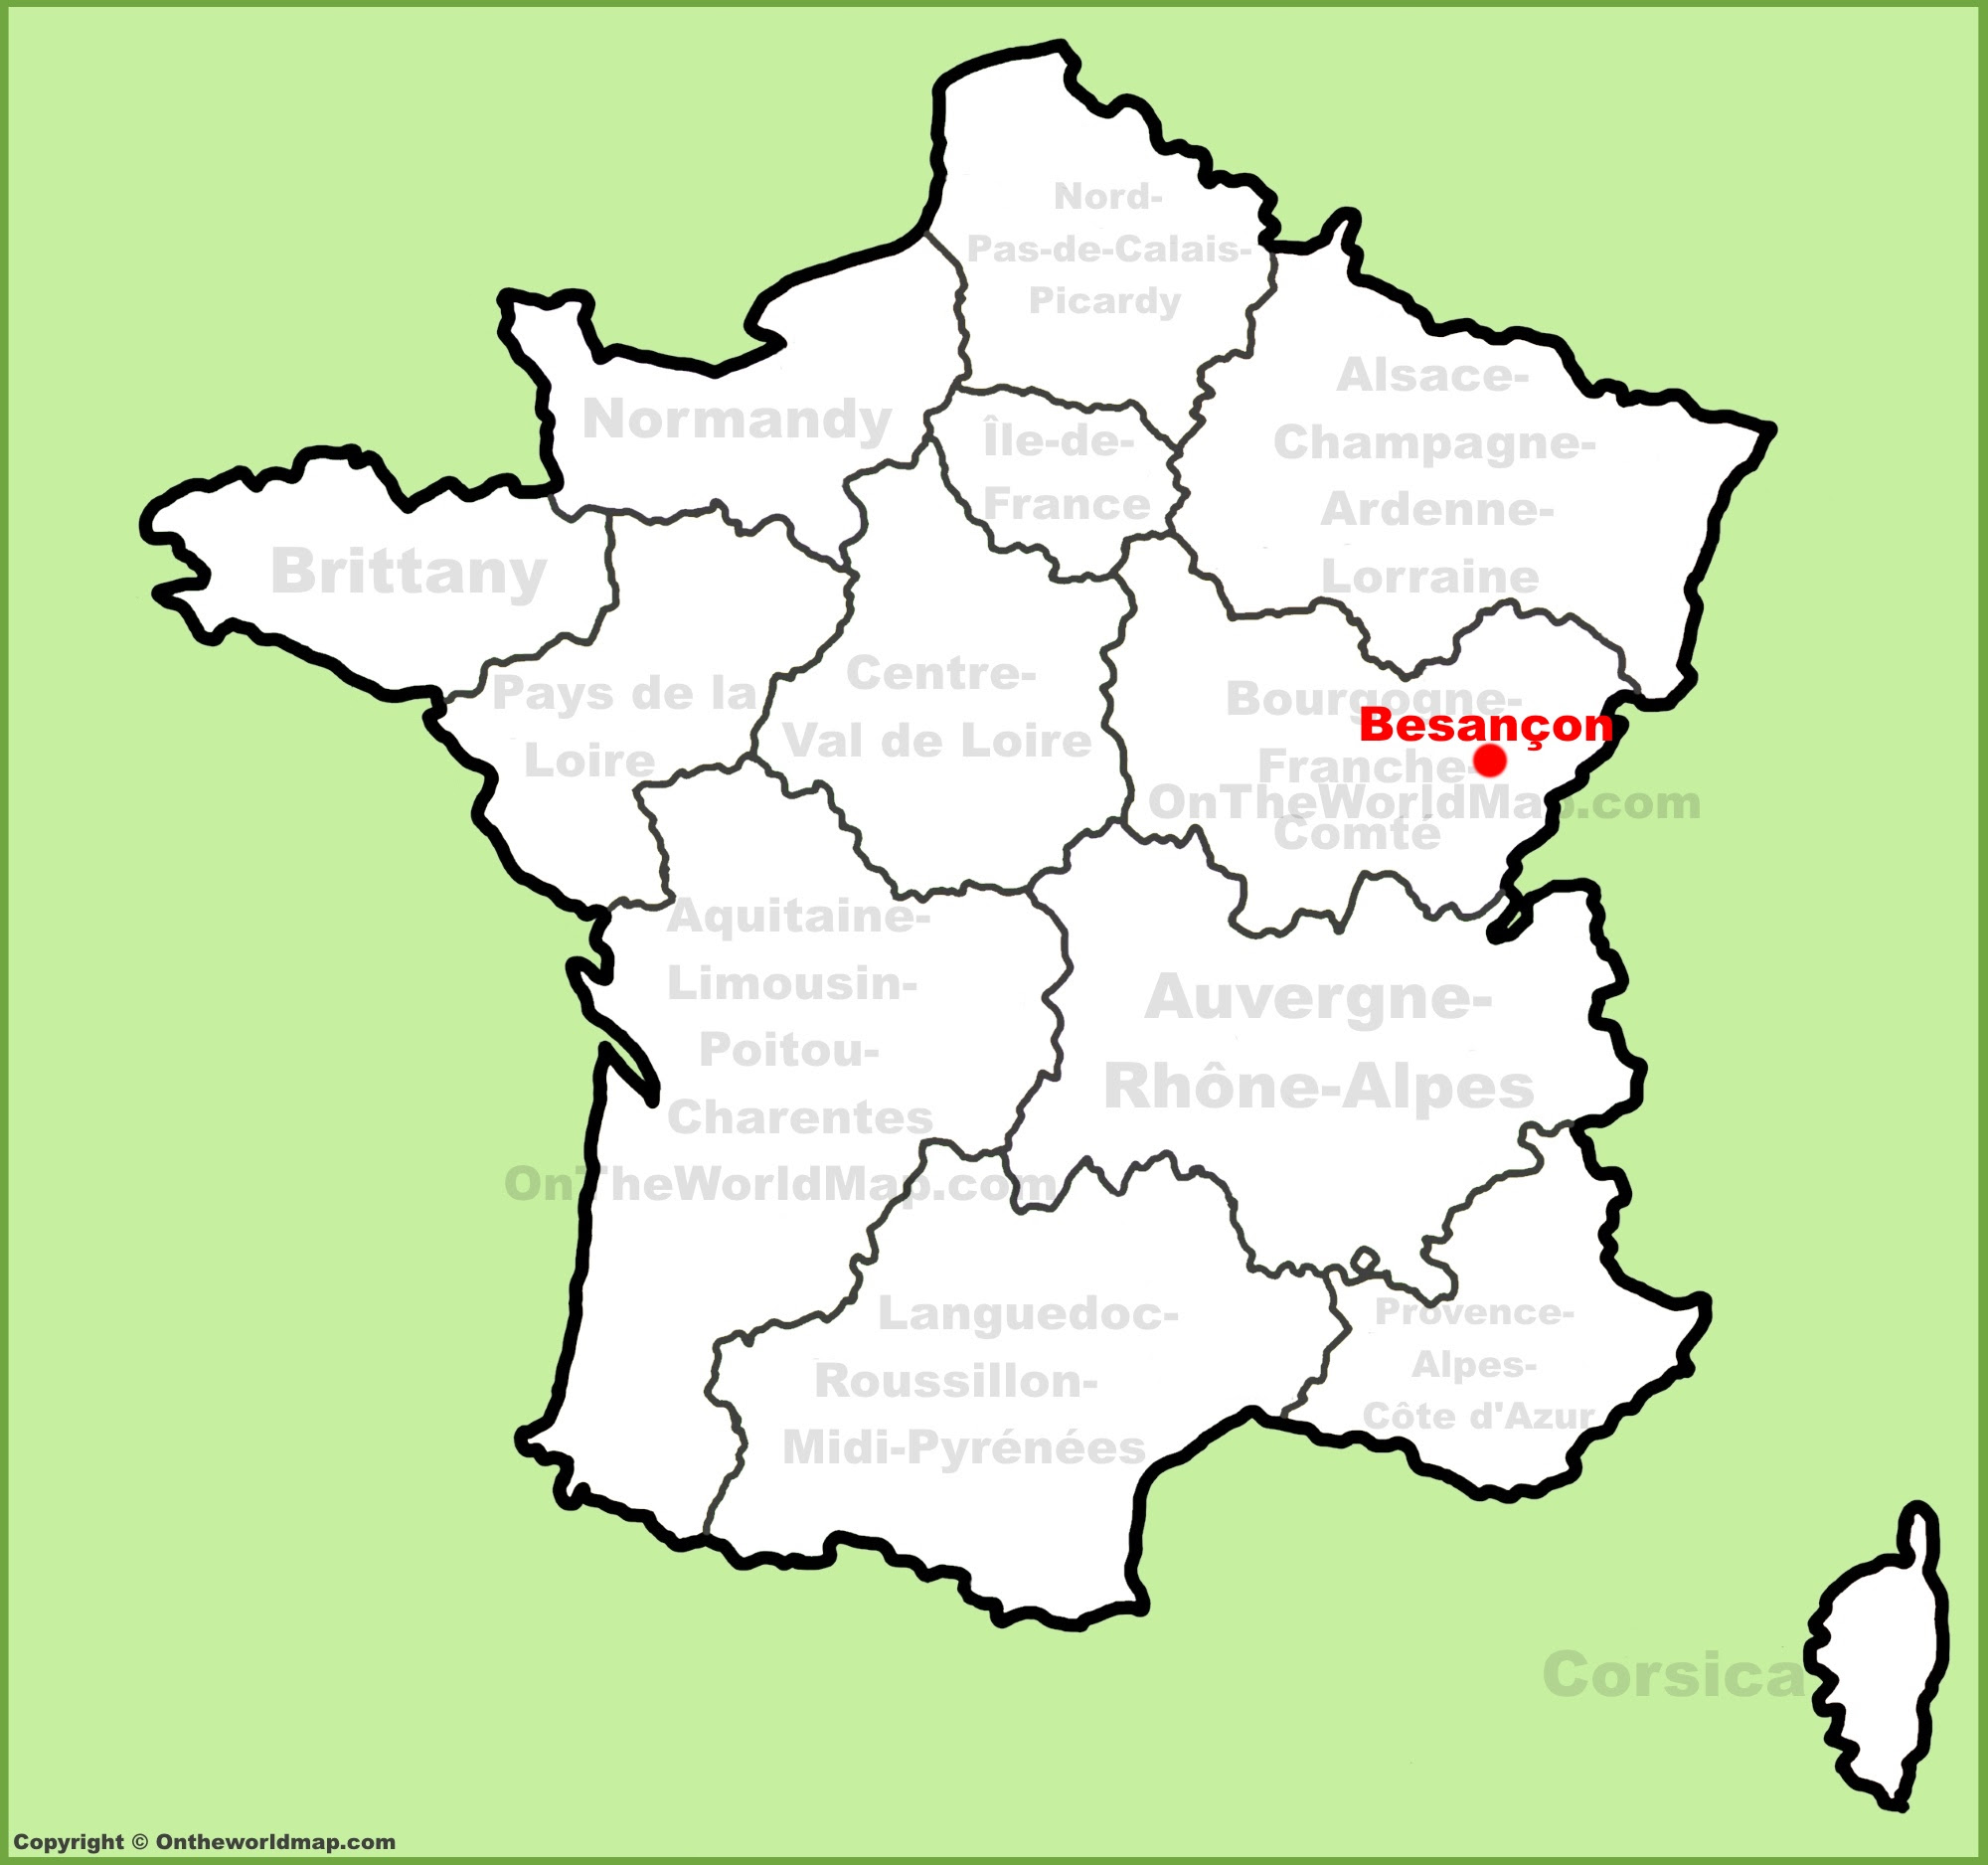 besancon location on the france map